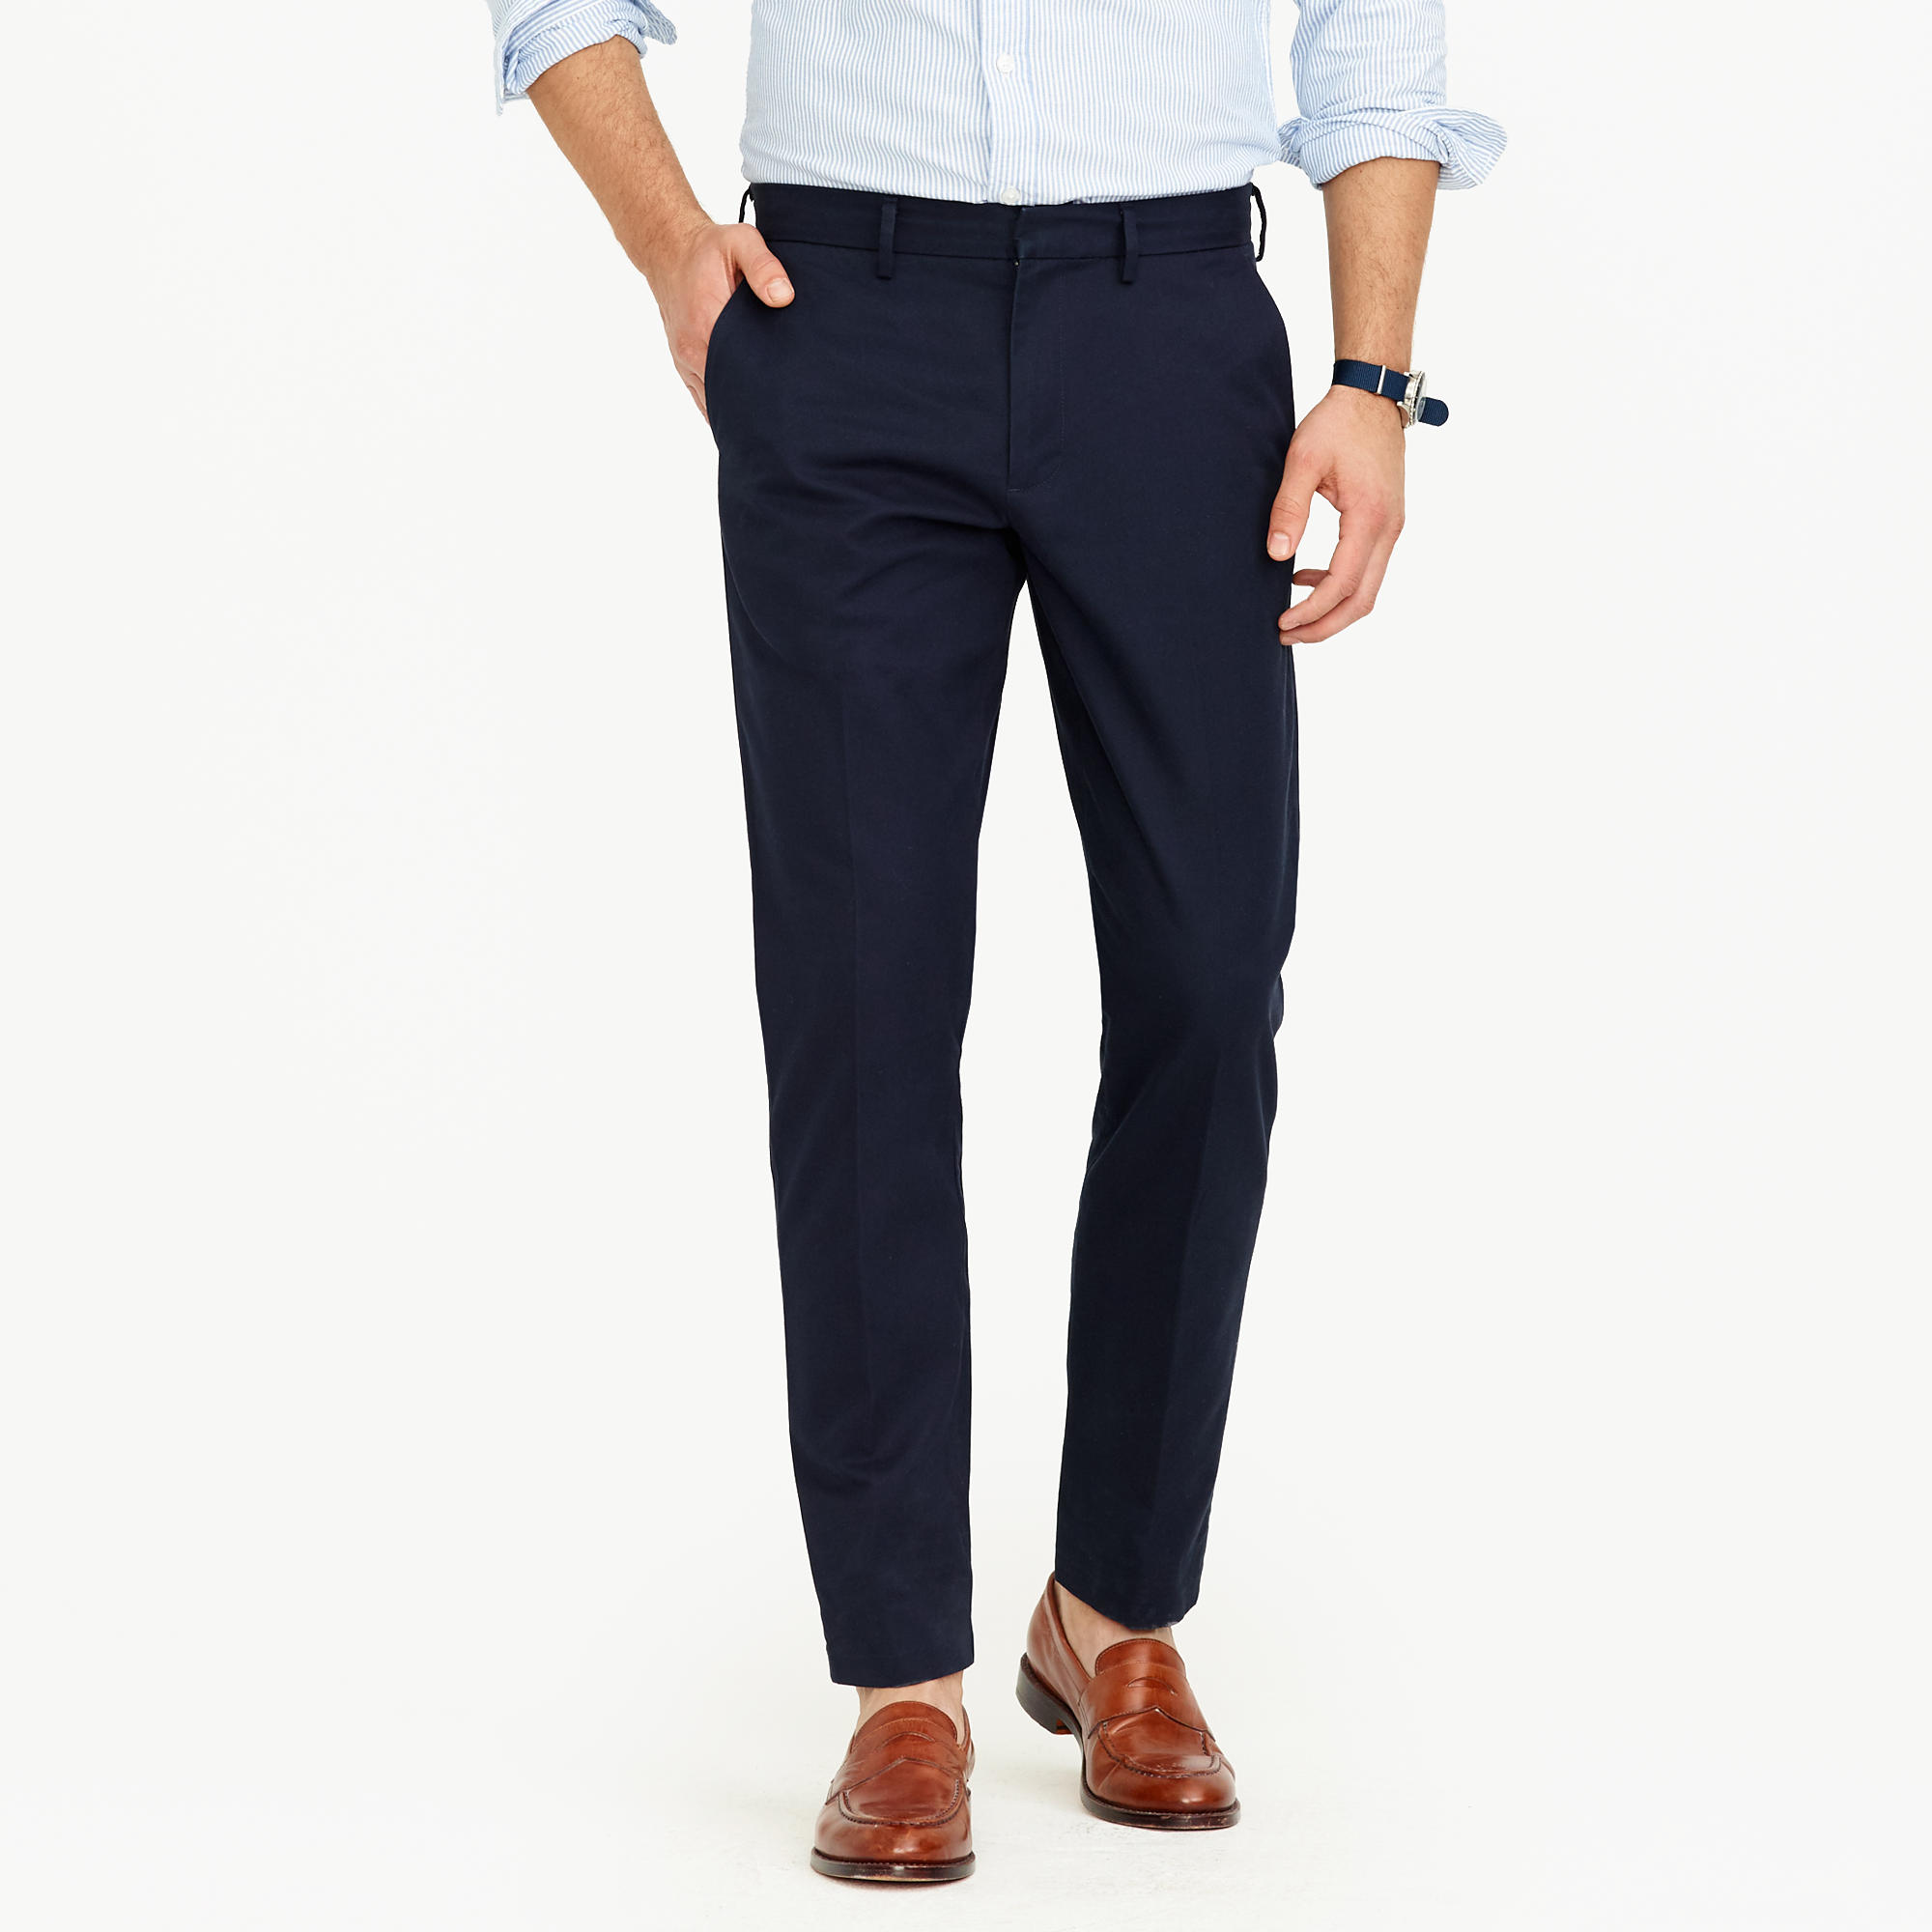 Best place to buy dress pants pi pants for Best place to buy mens dress shirts